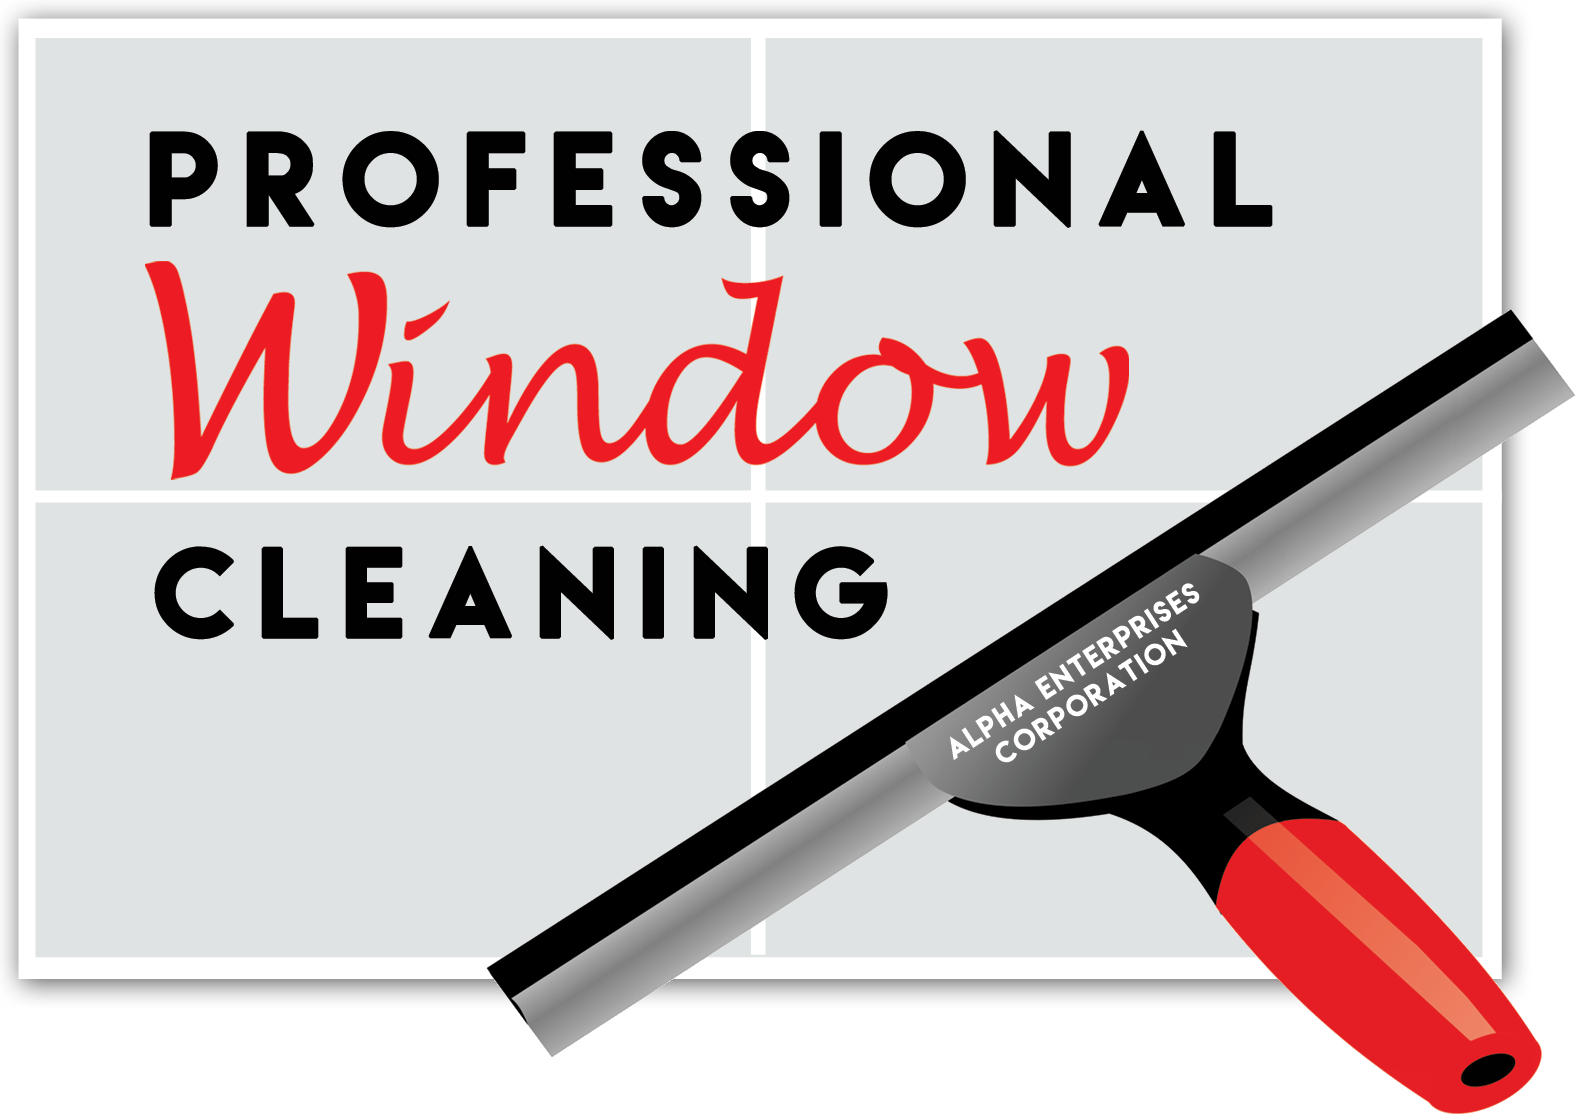 Alpha Enterprises Corporation - Professional Window Cleaning